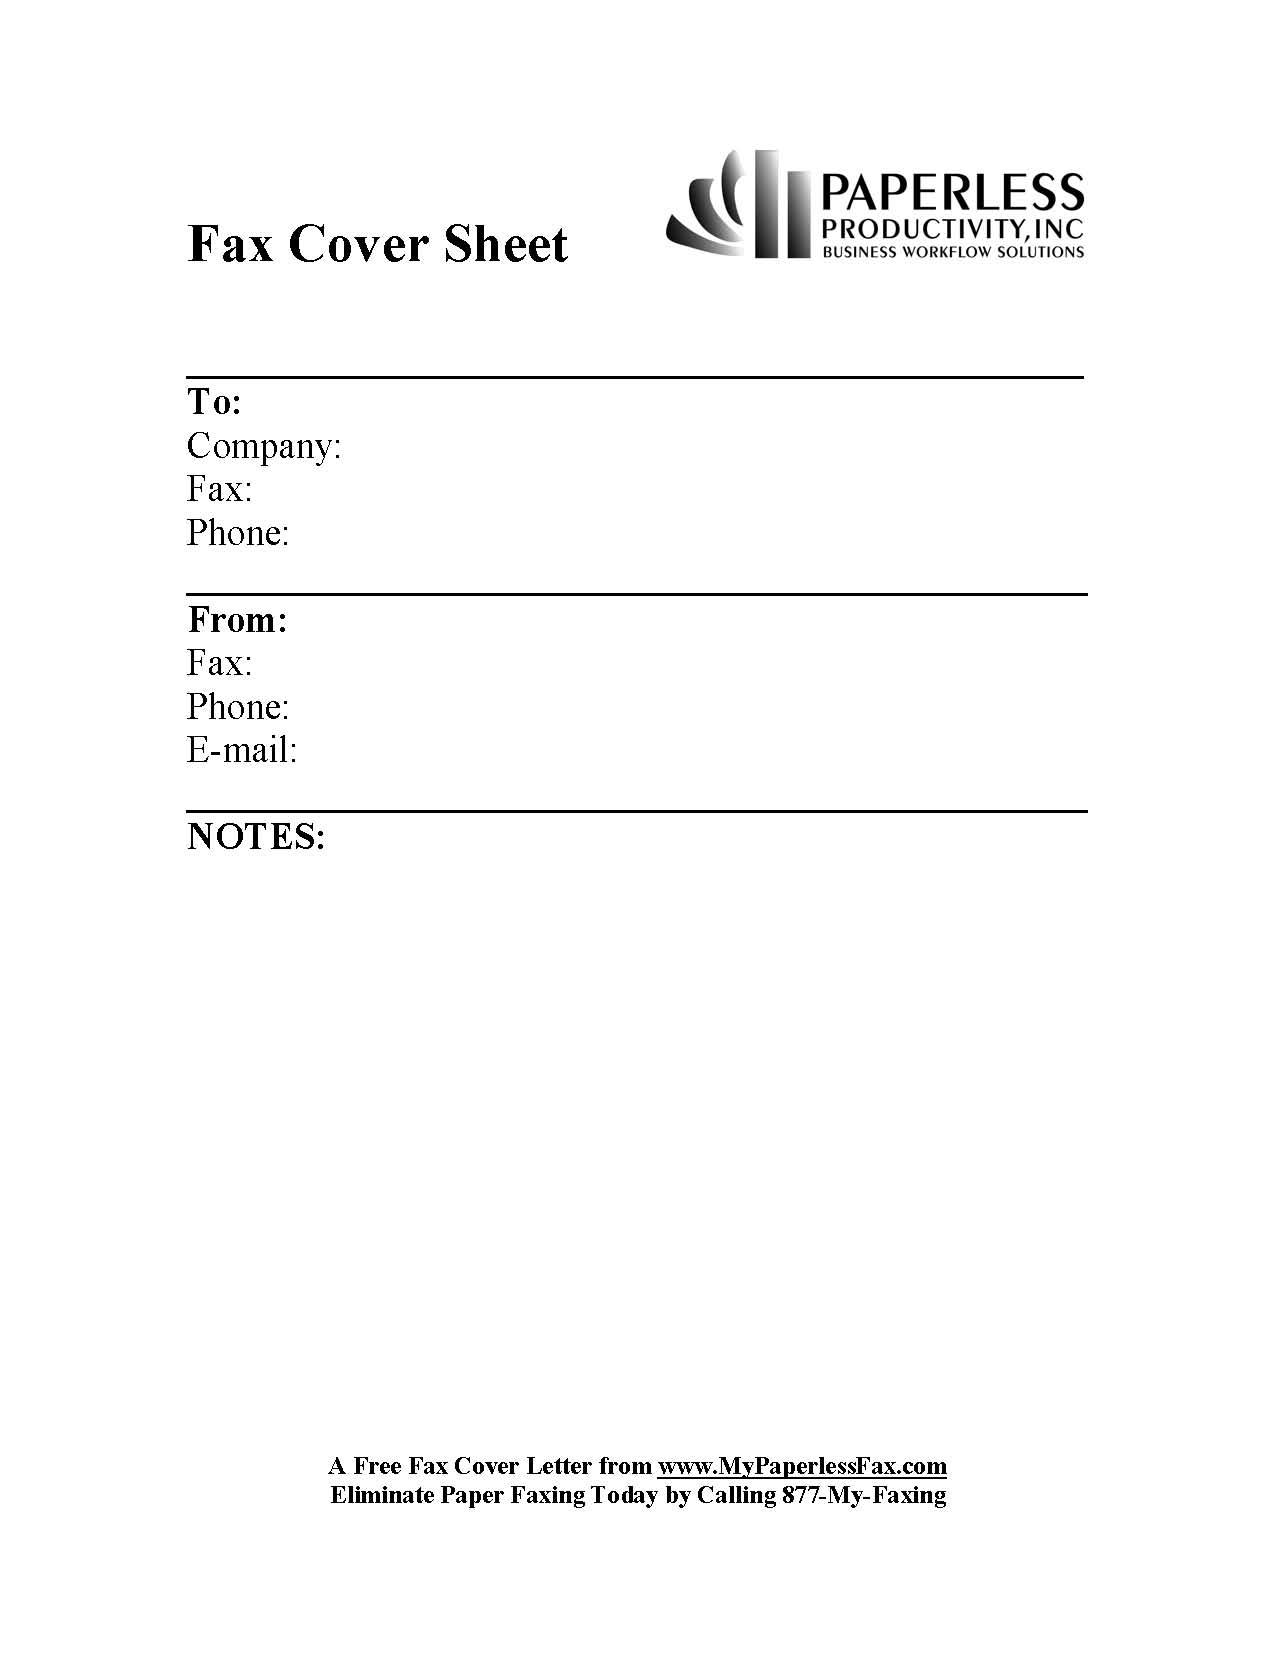 Sample fax cover letter template spiritdancerdesigns Images